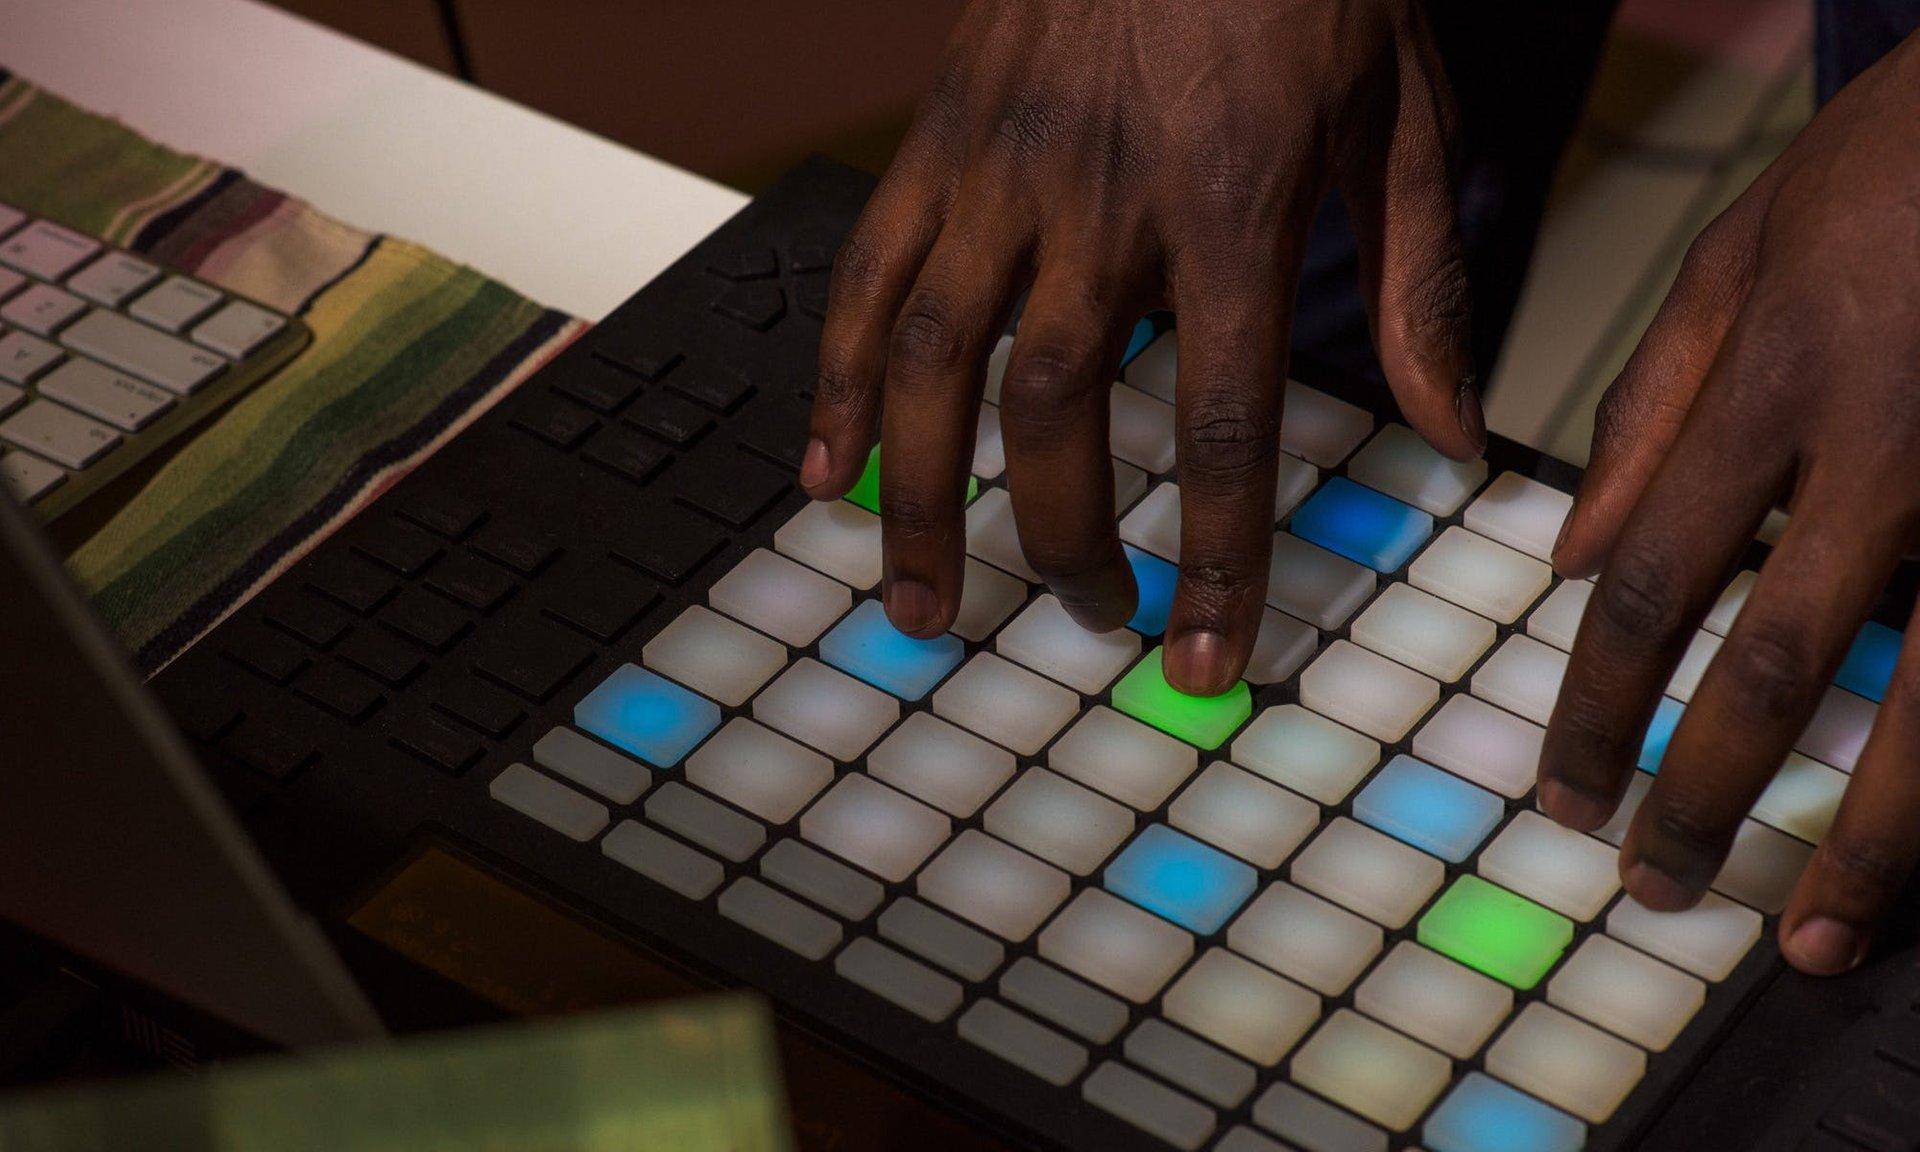 Music Creator using Gear